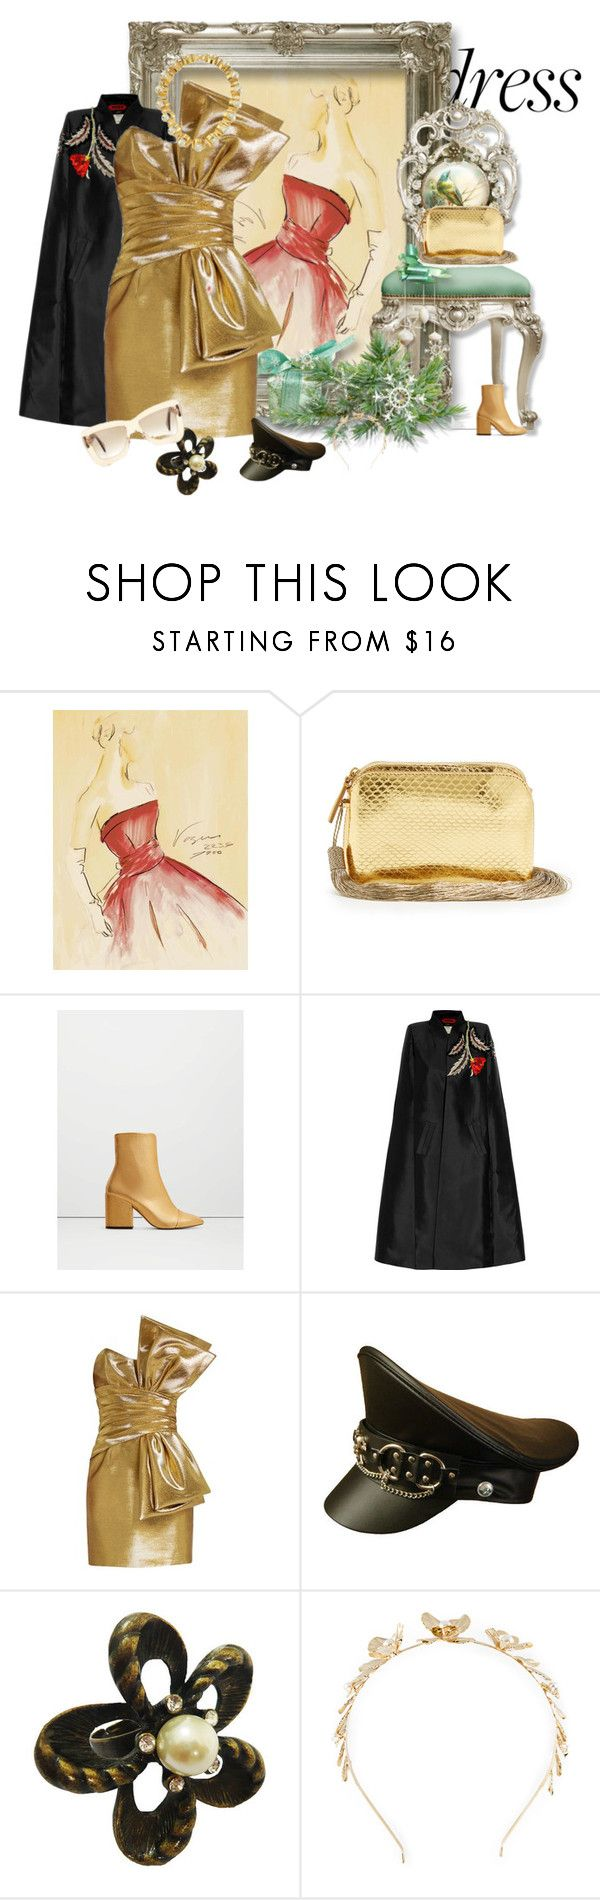 """Bare Essentials"" by peeweevaaz ❤ liked on Polyvore featuring The Row, MANGO, RVDK, Yves Saint Laurent, Rosantica, outfit, polyvoreeditorial, partystyle, offshoulderdress and polyvorefashion"